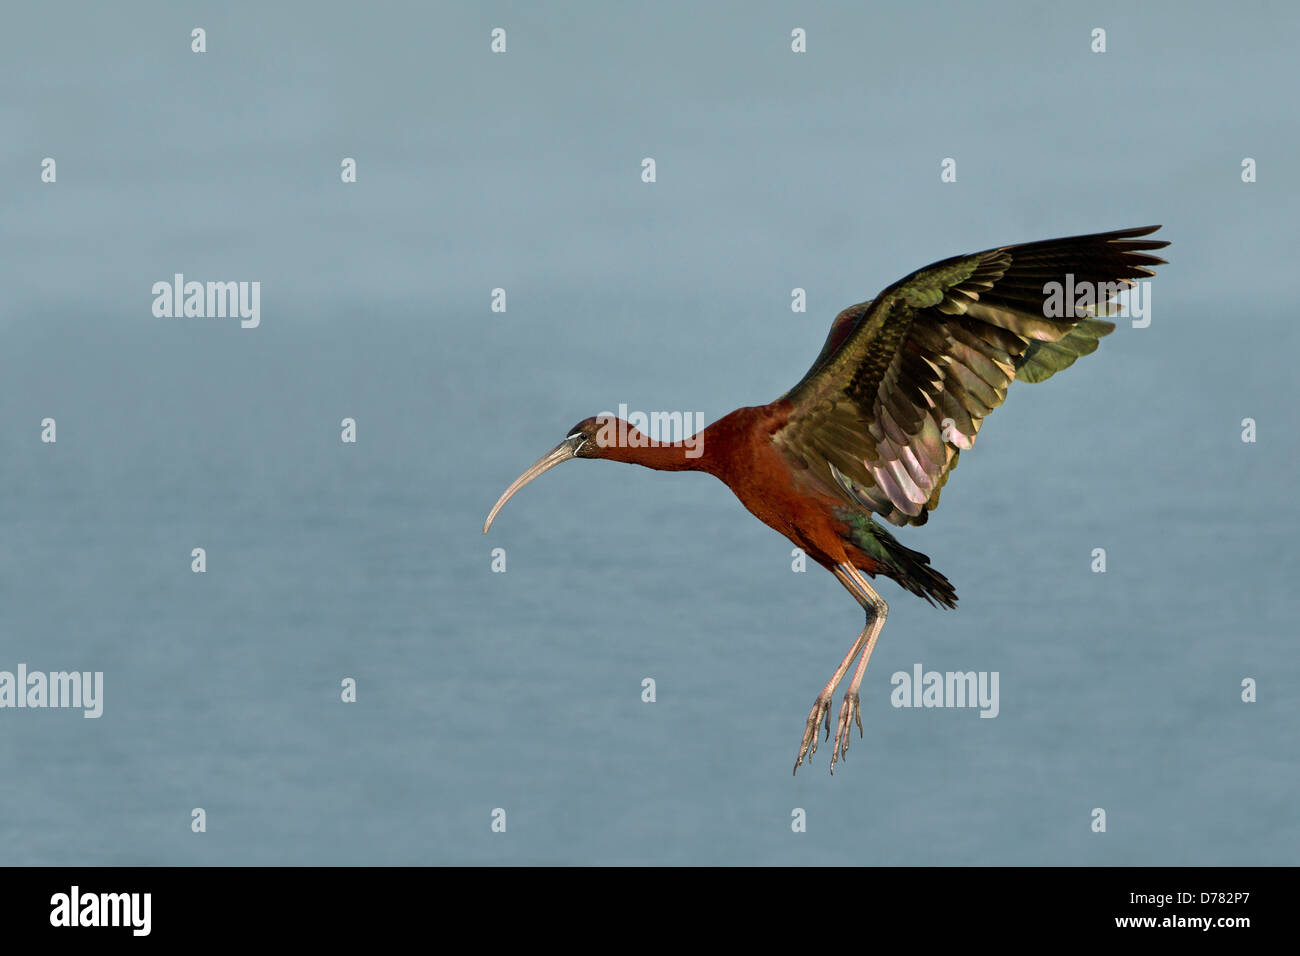 Glossy ibis Plegadis falcinellus swept back wings about to land water background - Stock Image